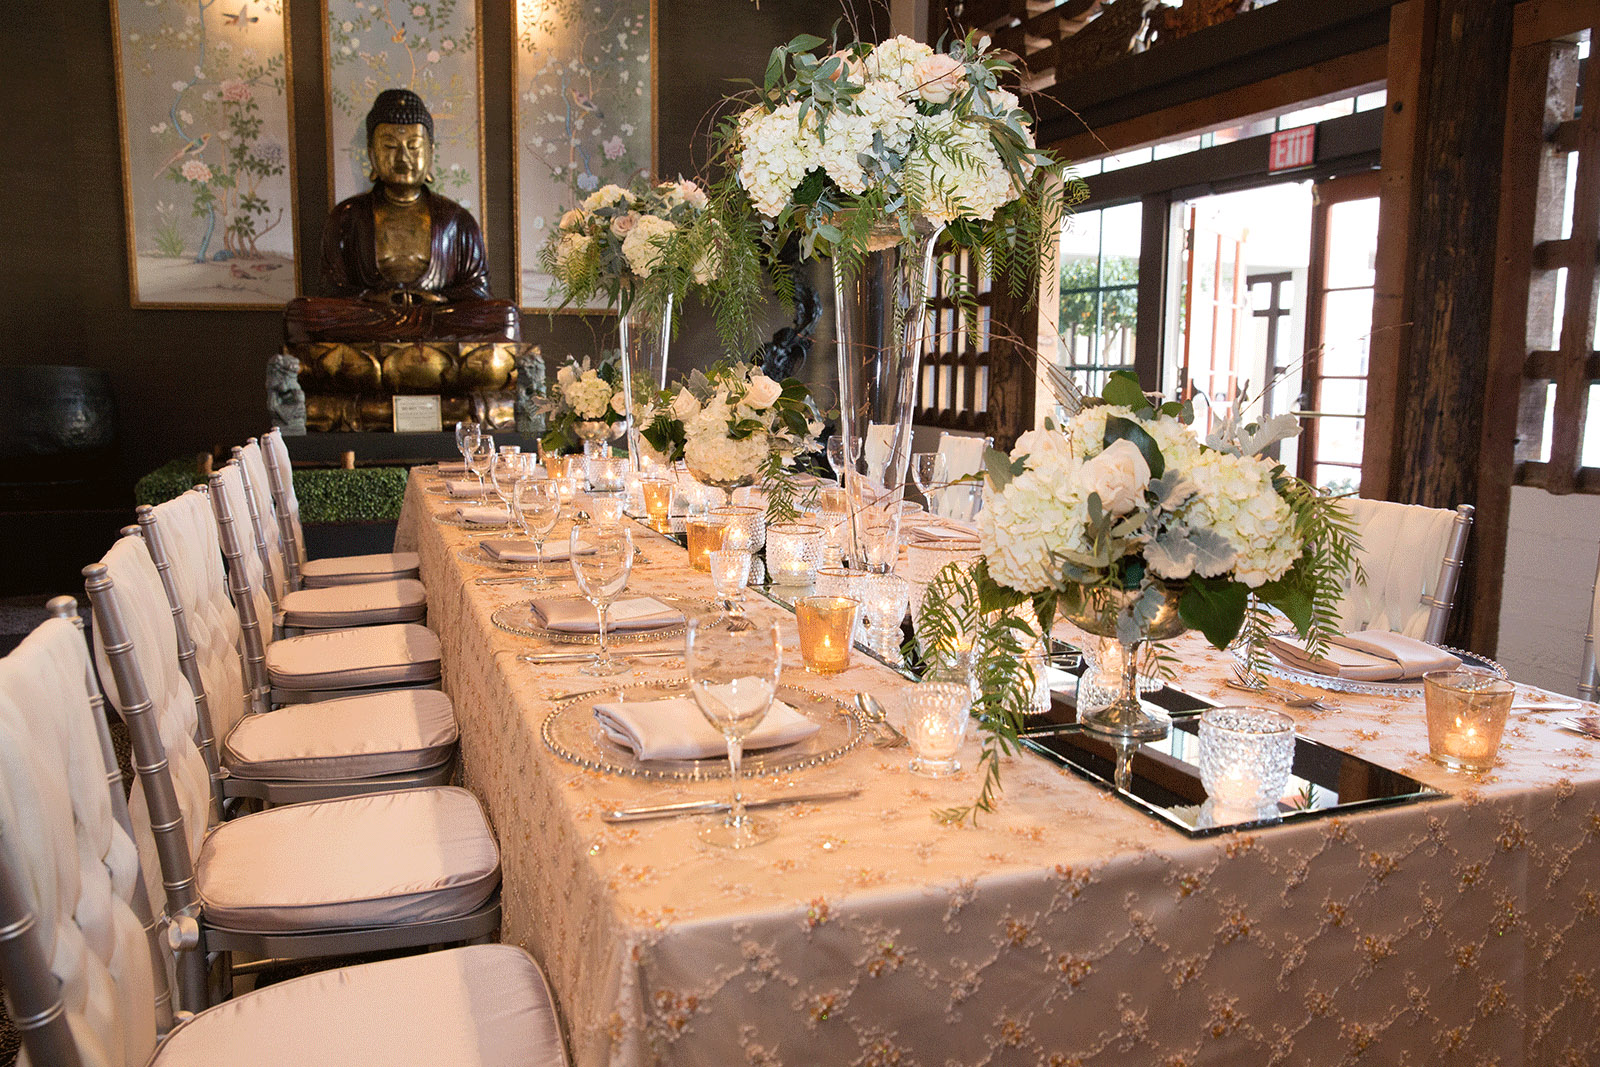 banquet room with decorated table and flowers